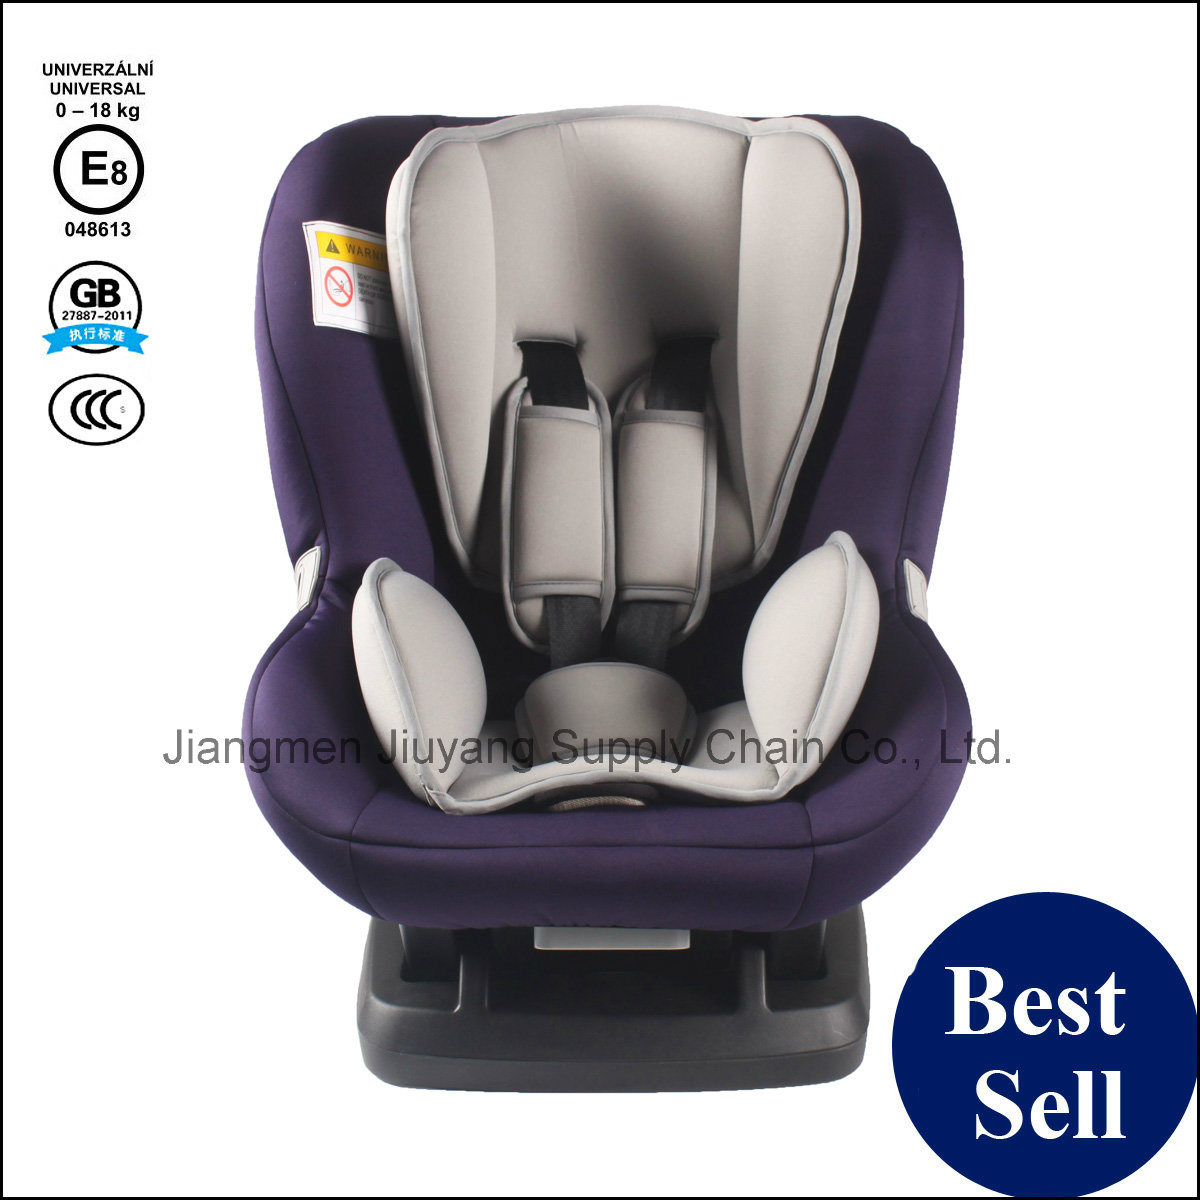 Baby Car Safety Seat Skeleton Details Group 0+1 Suitbility 0 to 18 Kg Child